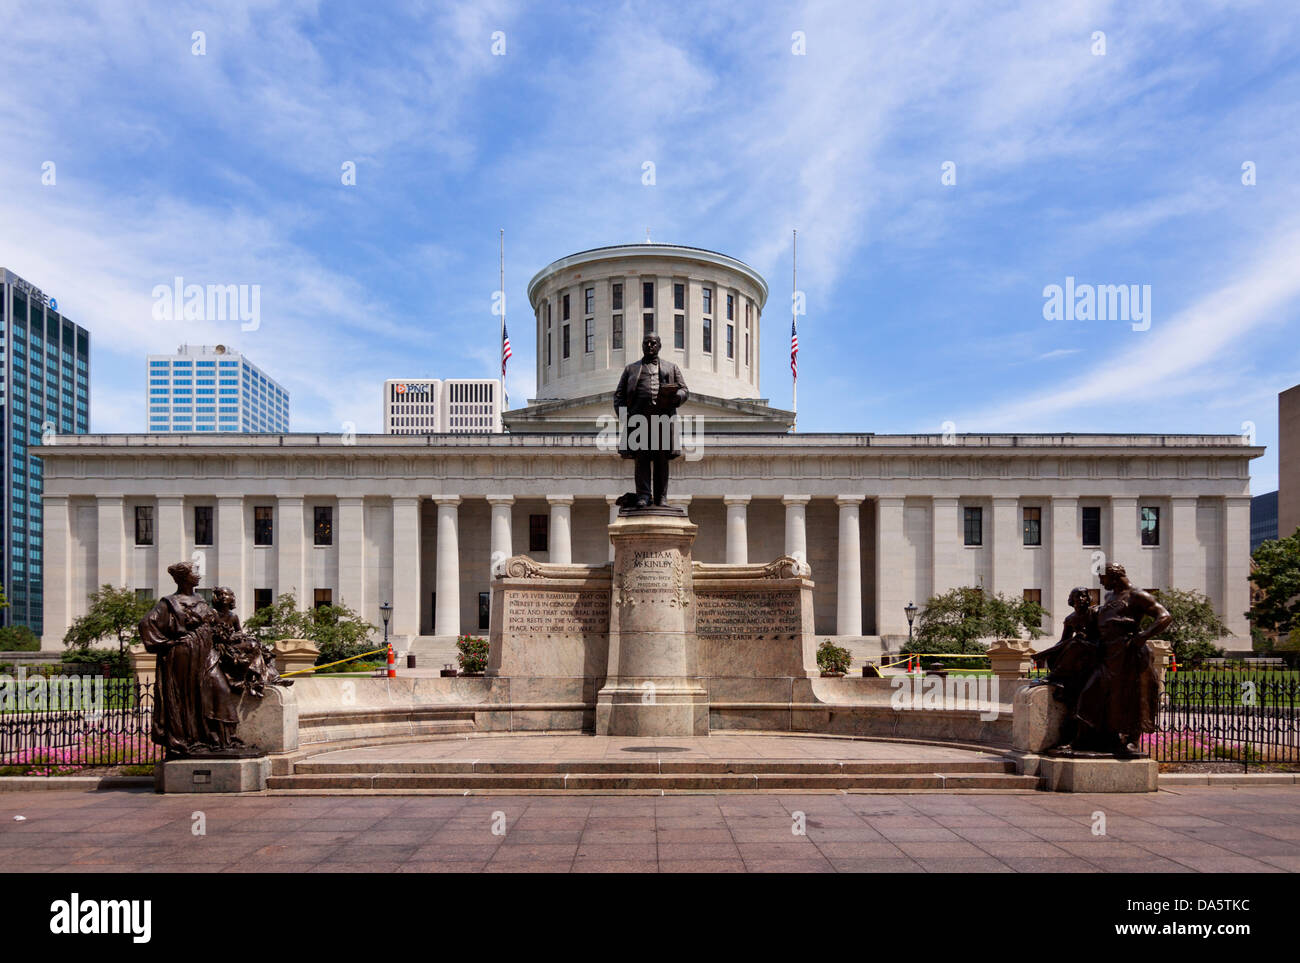 The McKinley memorial at the Ohio Statehouse in Columbus, Ohio, USA. - Stock Image